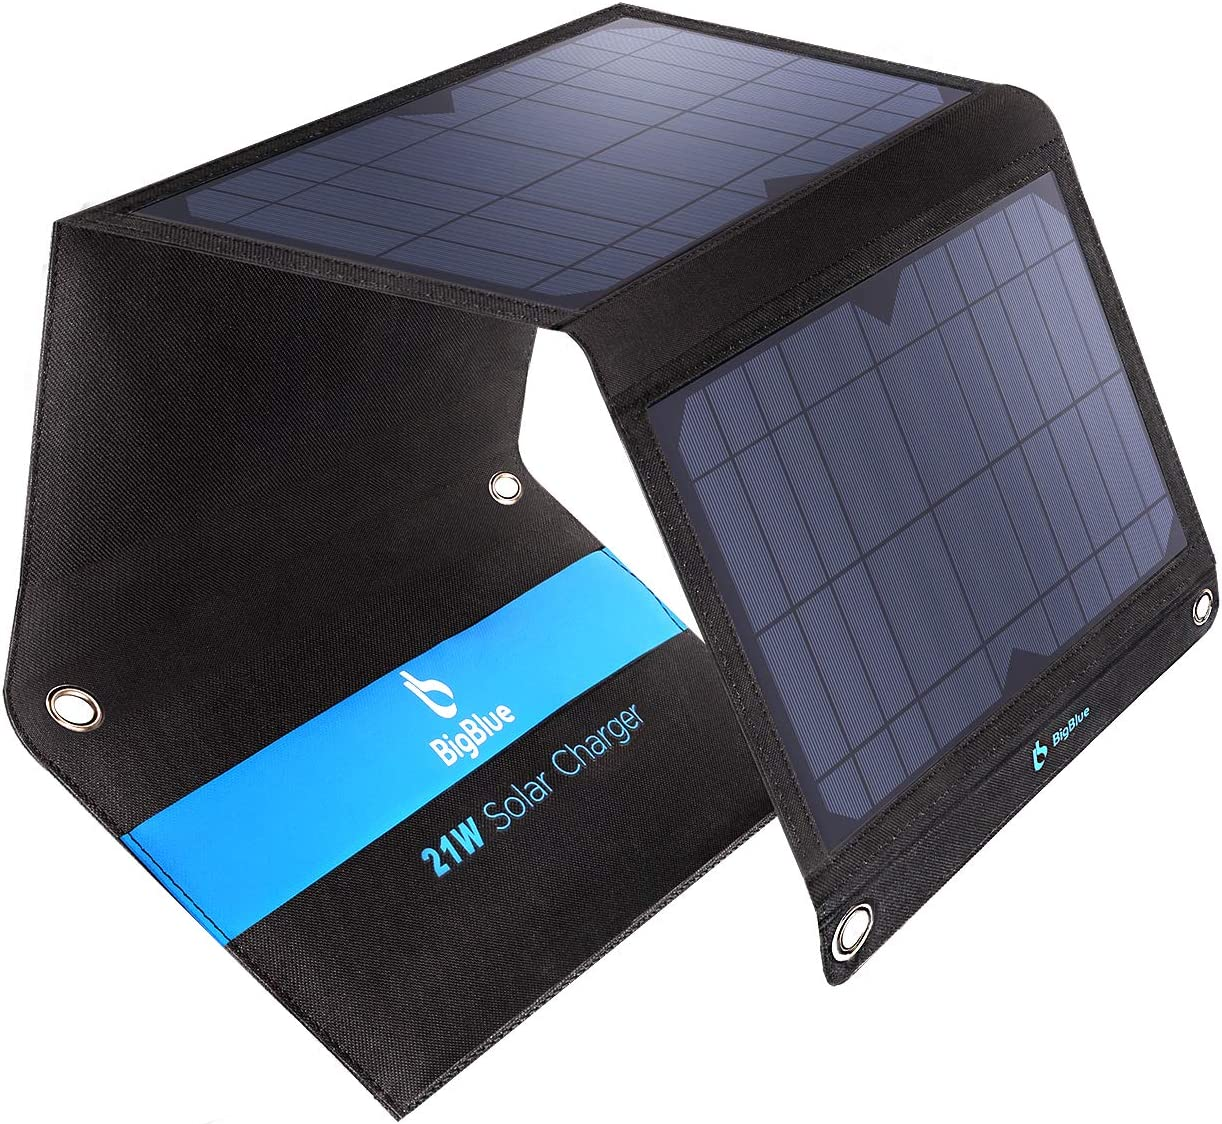 Solar Panel Charger, BigBlue 21W Phone Charger, Black